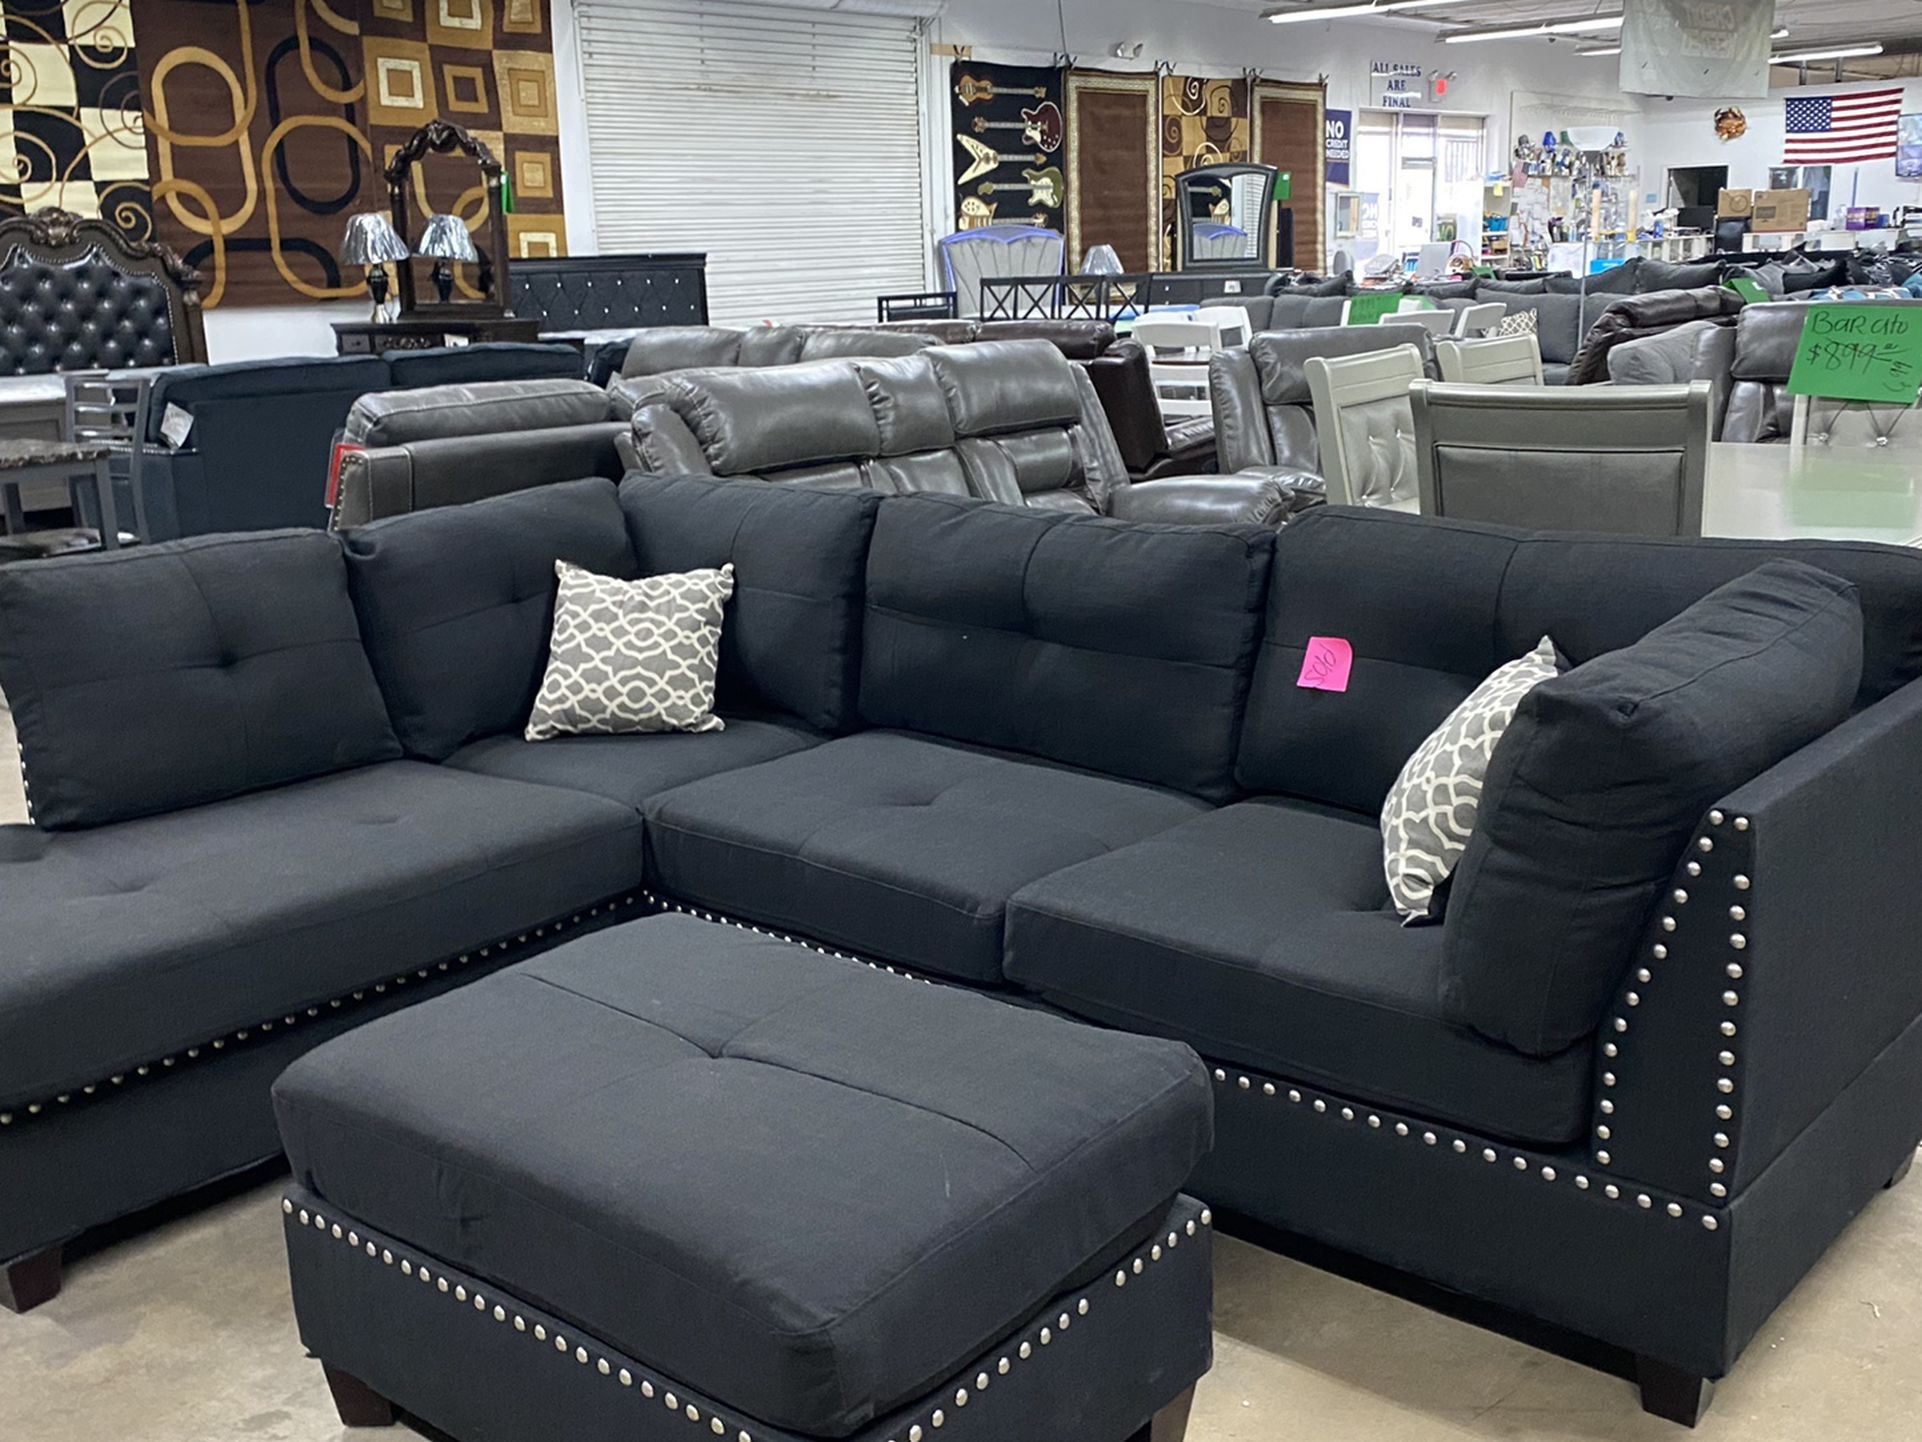 Brand New Sectional With Ottoman $675 Same Day Delivery